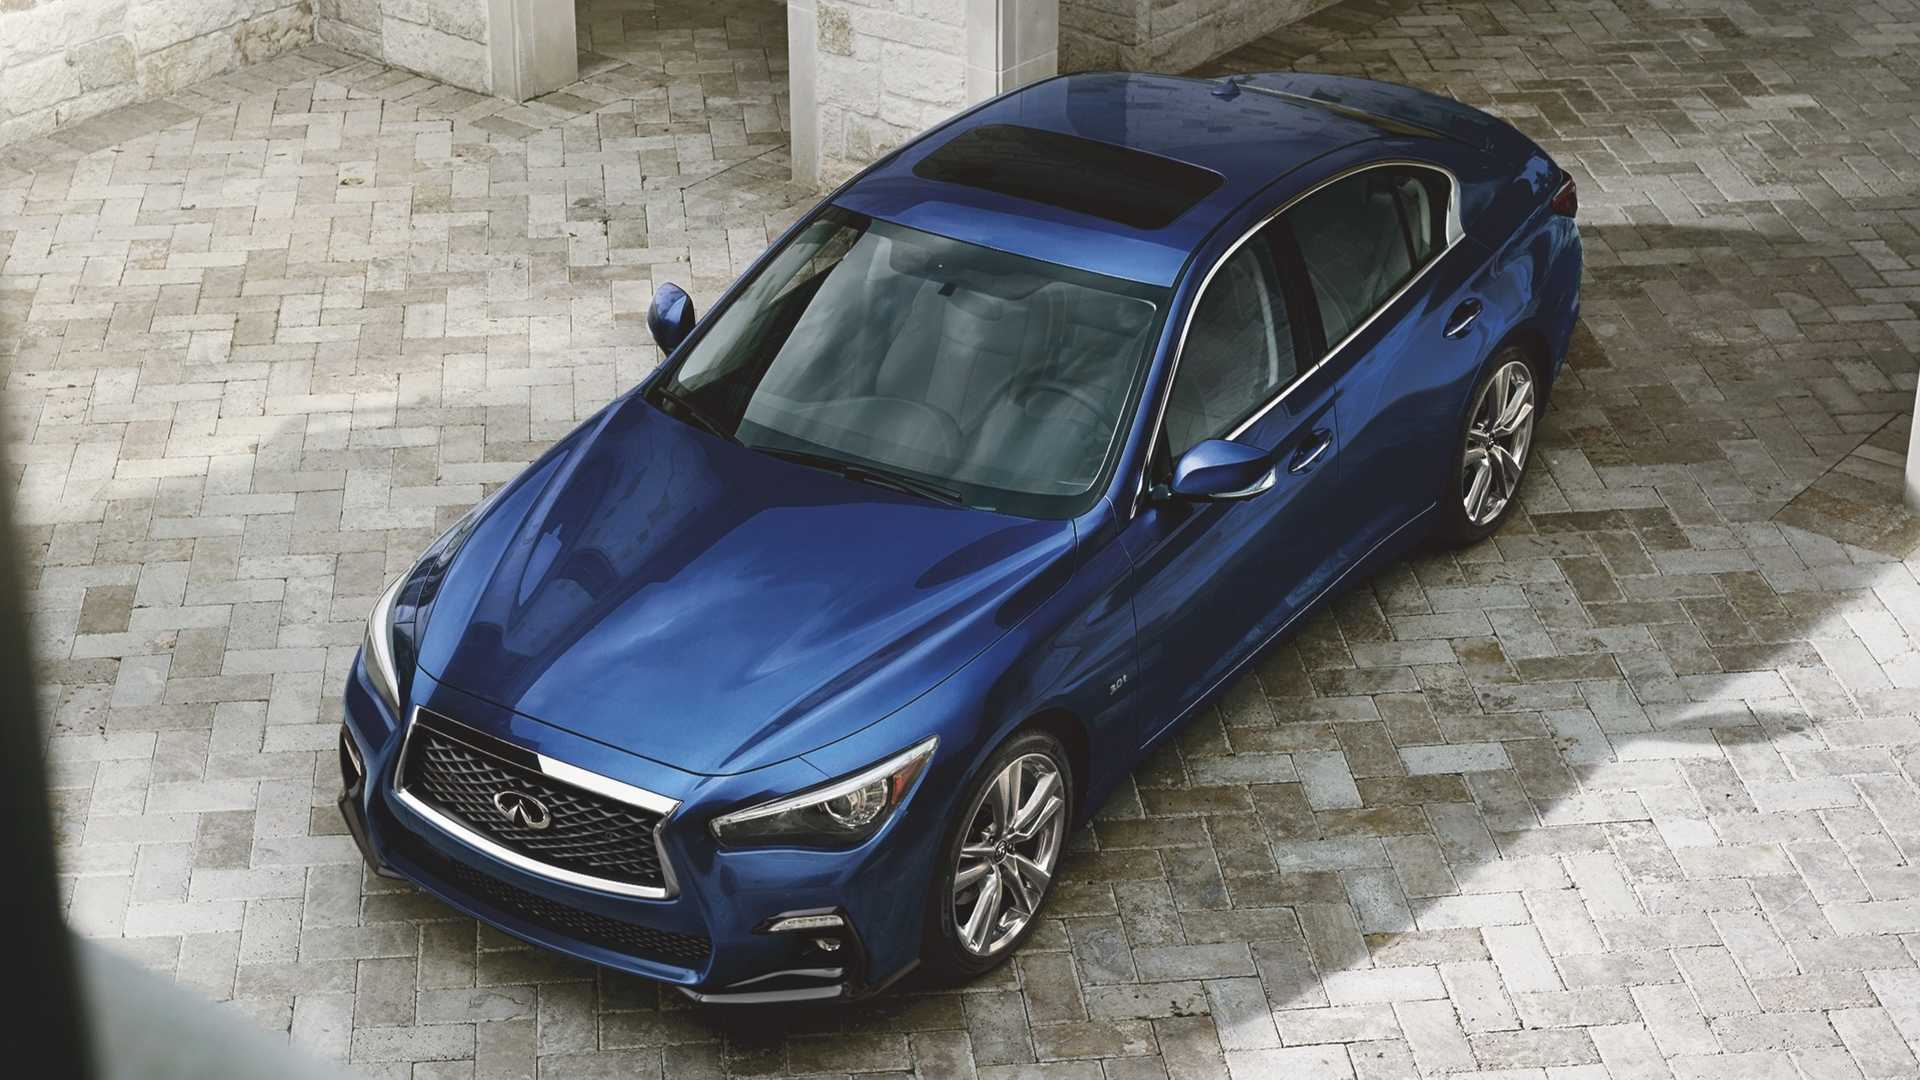 Infiniti is getting ready to introduce a new version of its Q50 luxury sedan/saloon, called the Signature Edition, at the 2019 New York International Auto Show starting in a couple days